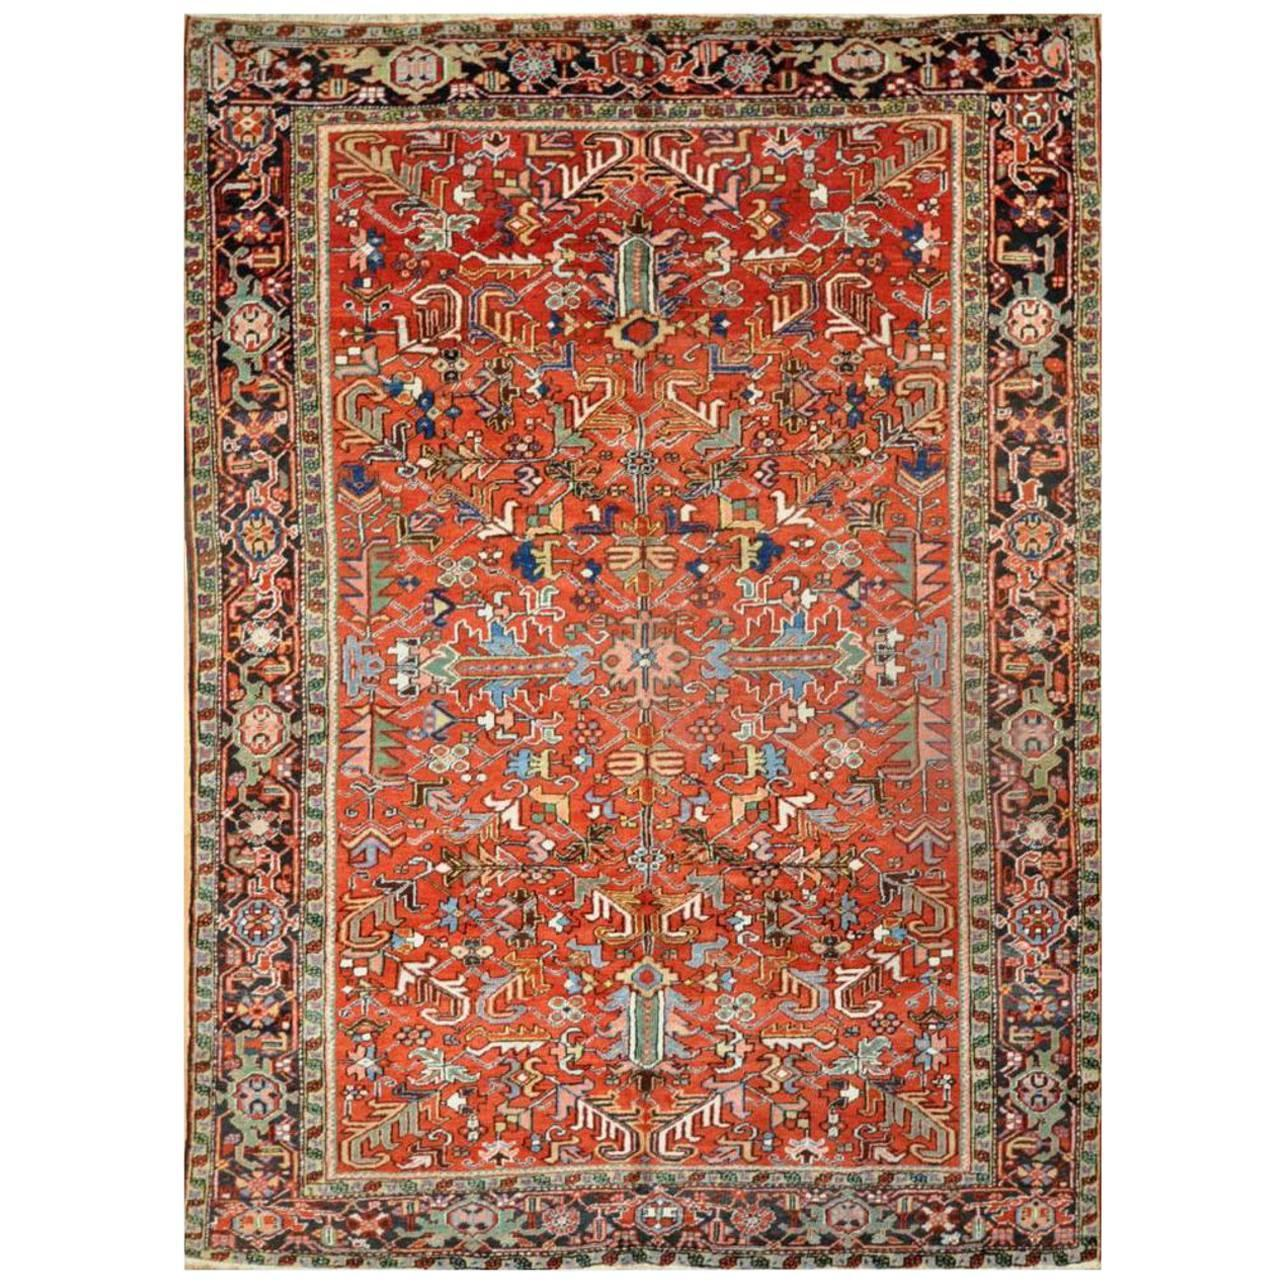 Room Sized Rugs 28 Images Antique Room Size Tabriz Rug At 1stdibs Antique Room Sized Rug